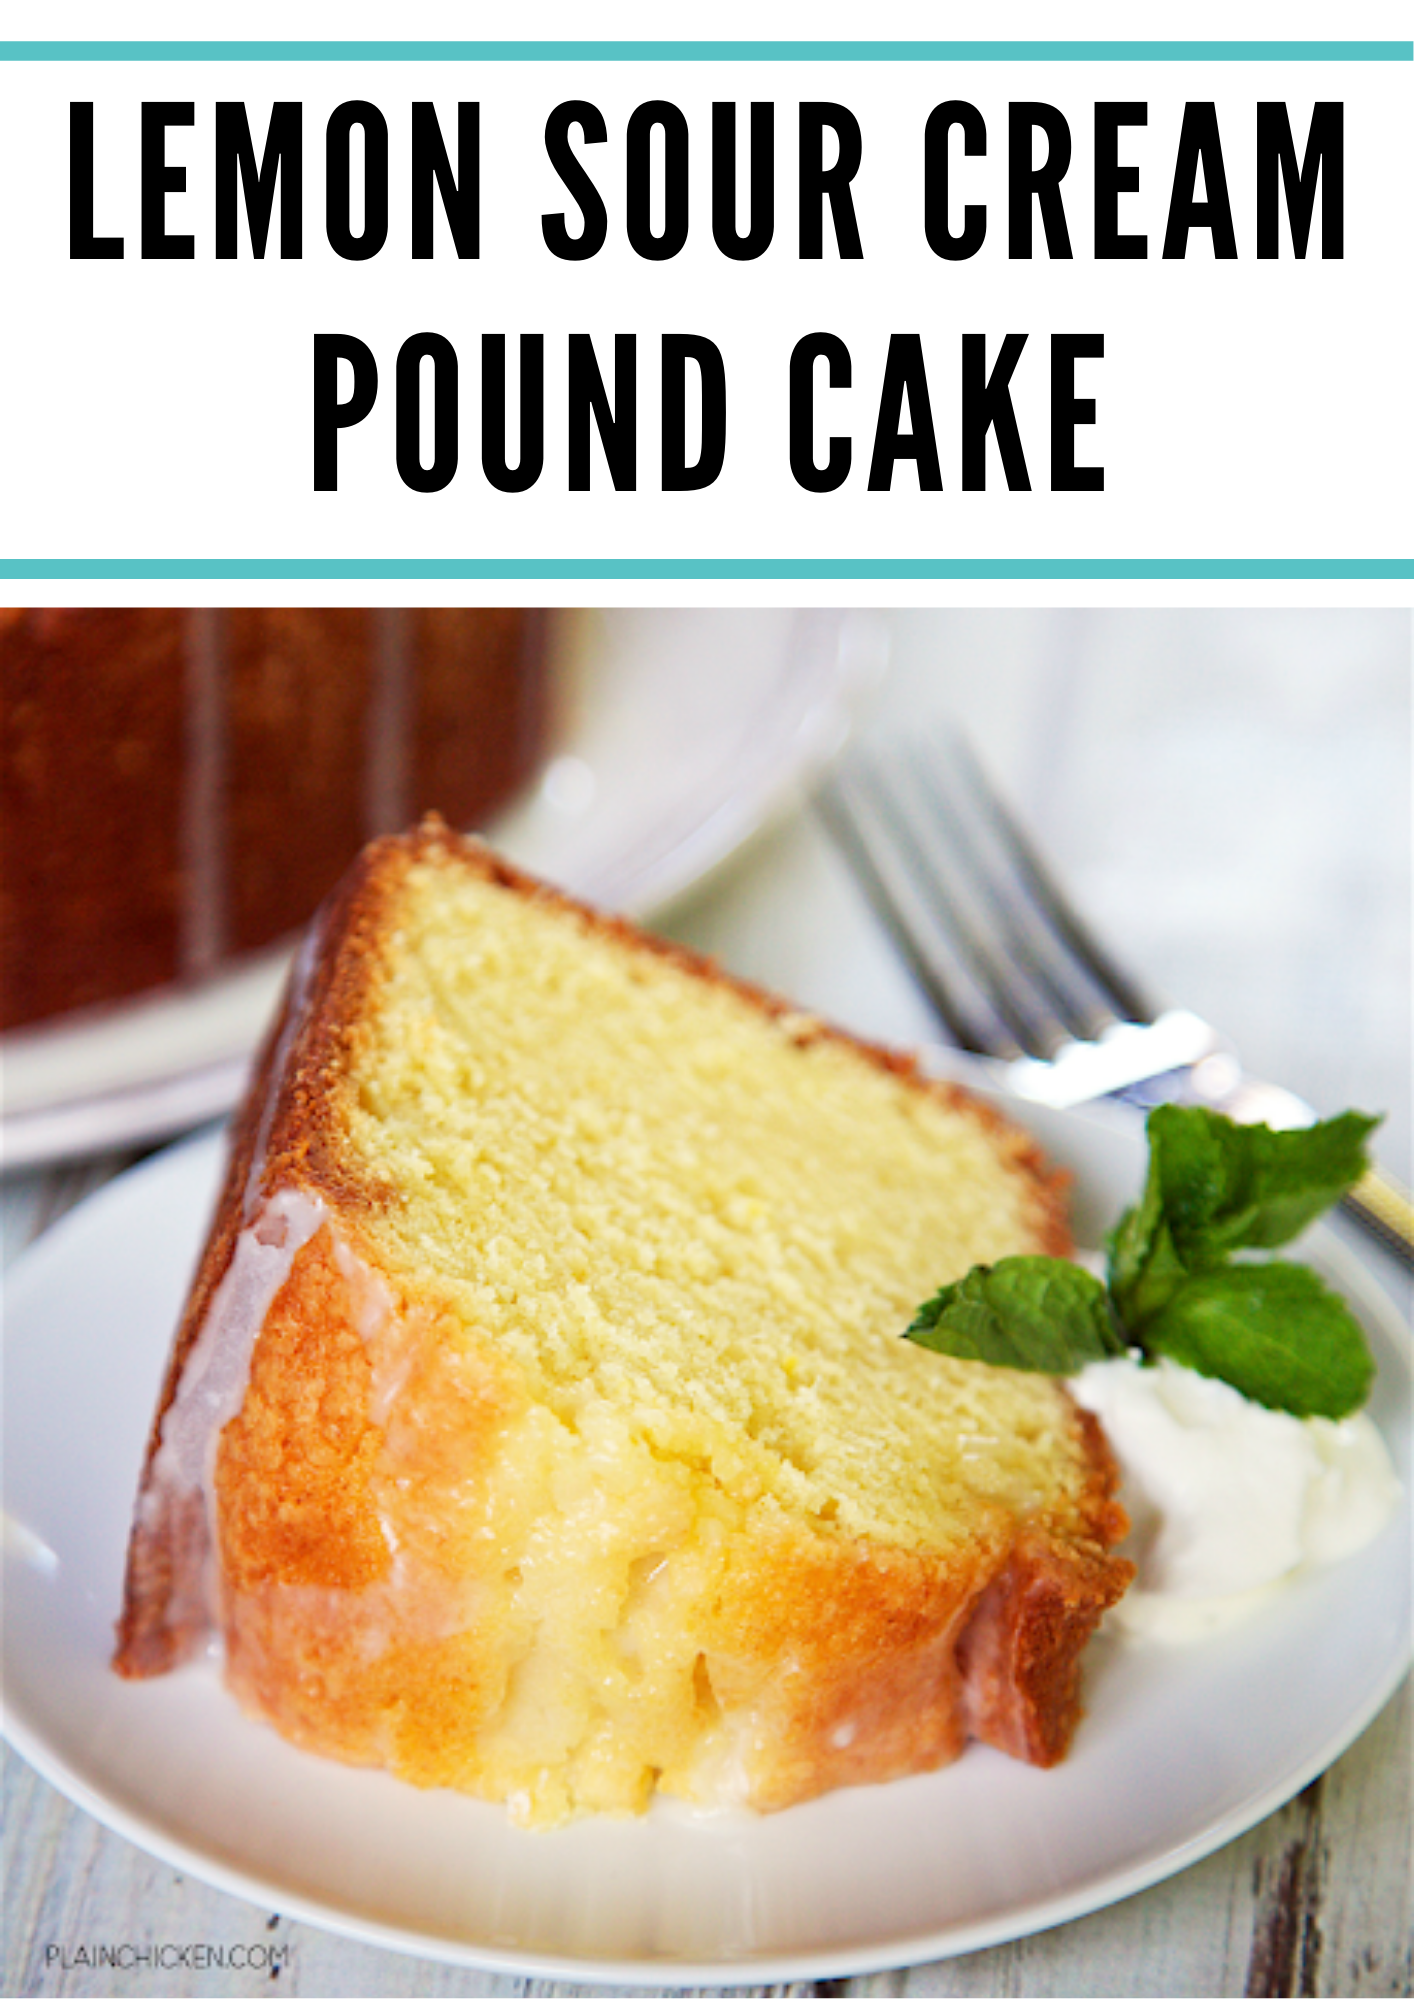 Lemon Sour Cream Pound Cake In 2020 Sour Cream Pound Cake Lemon Pound Cake Recipe Pound Cake Recipes